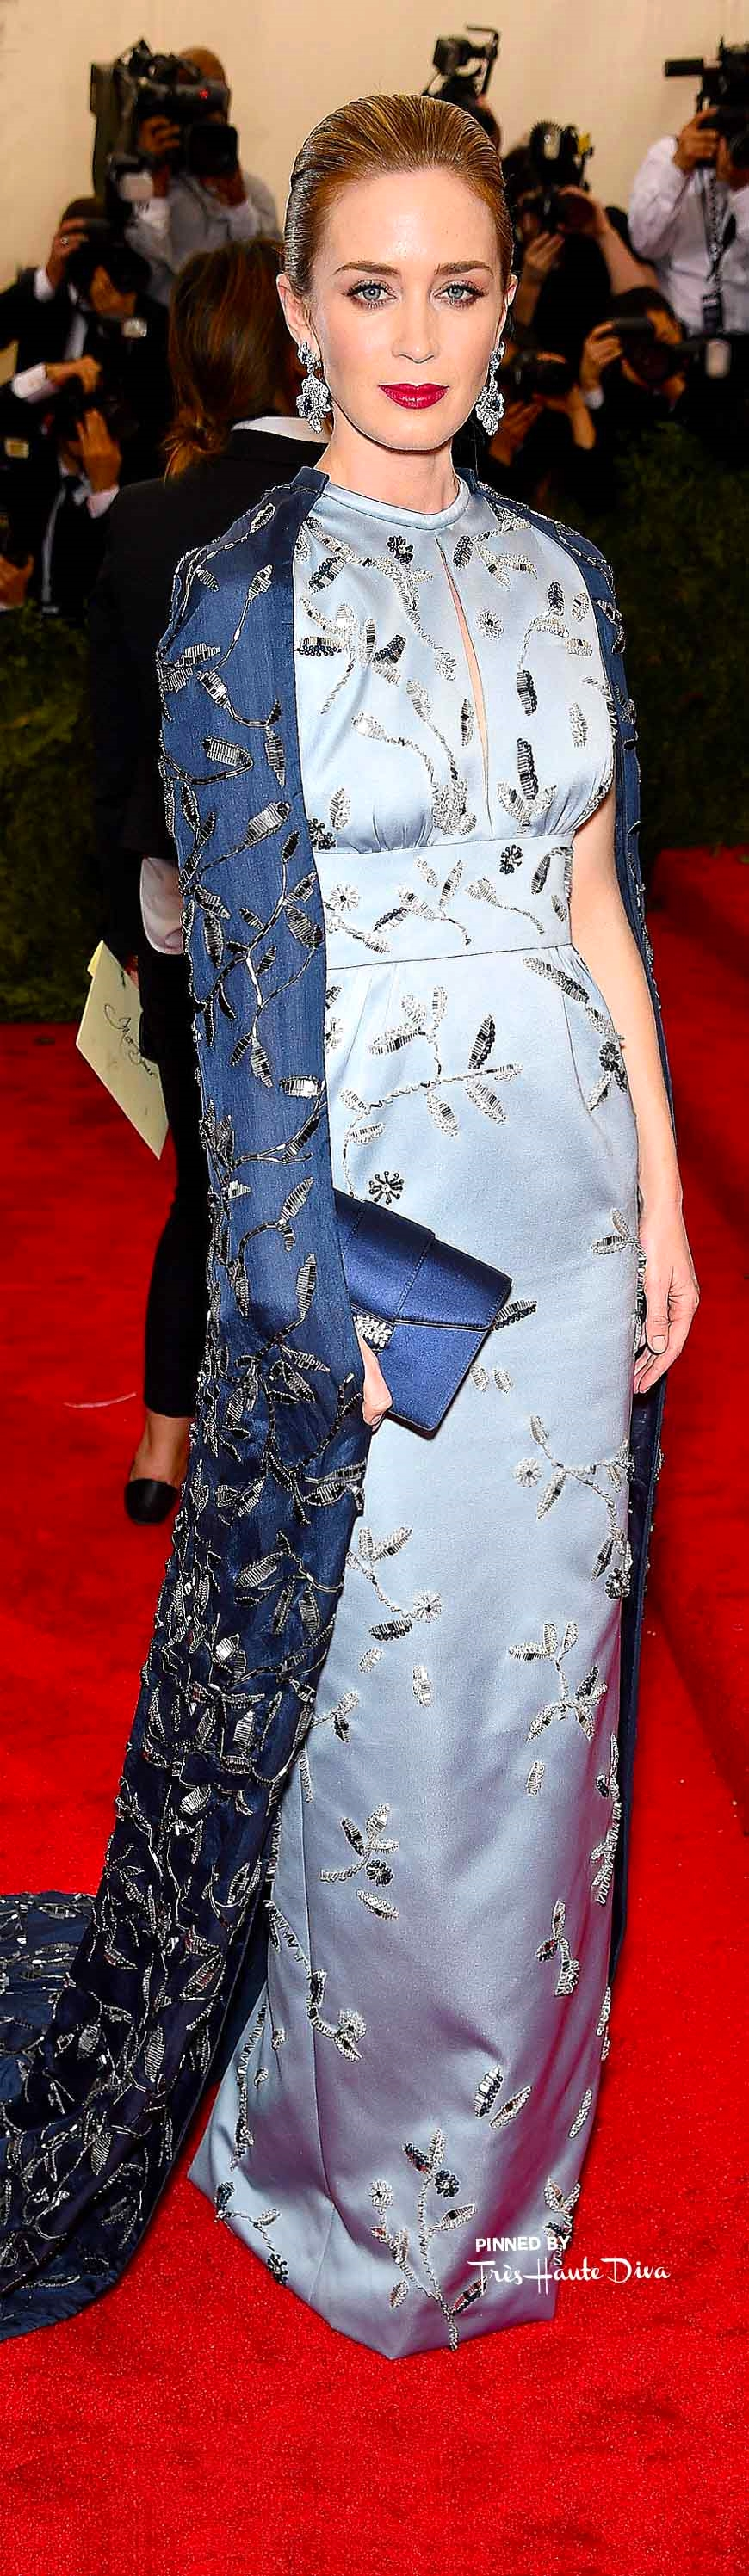 Emily Blunt in Prada               Getty Images/ Dimitrios Kambouris